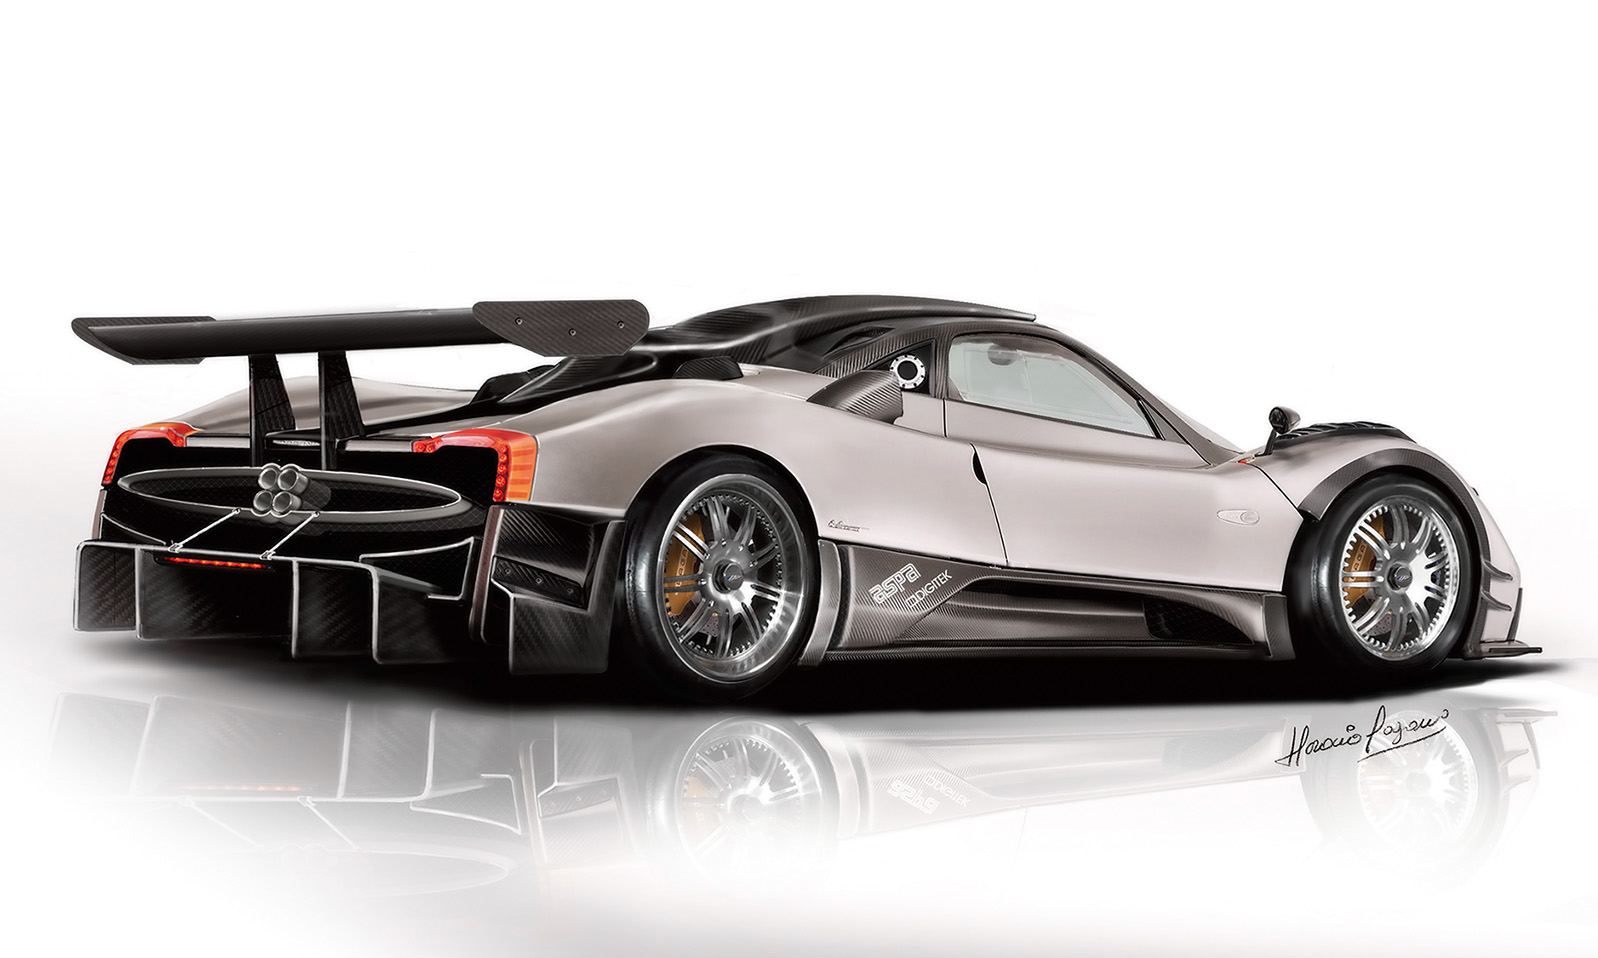 2007 Pagani Zonda C12 R Desktop Wallpaper and High Resolution Images